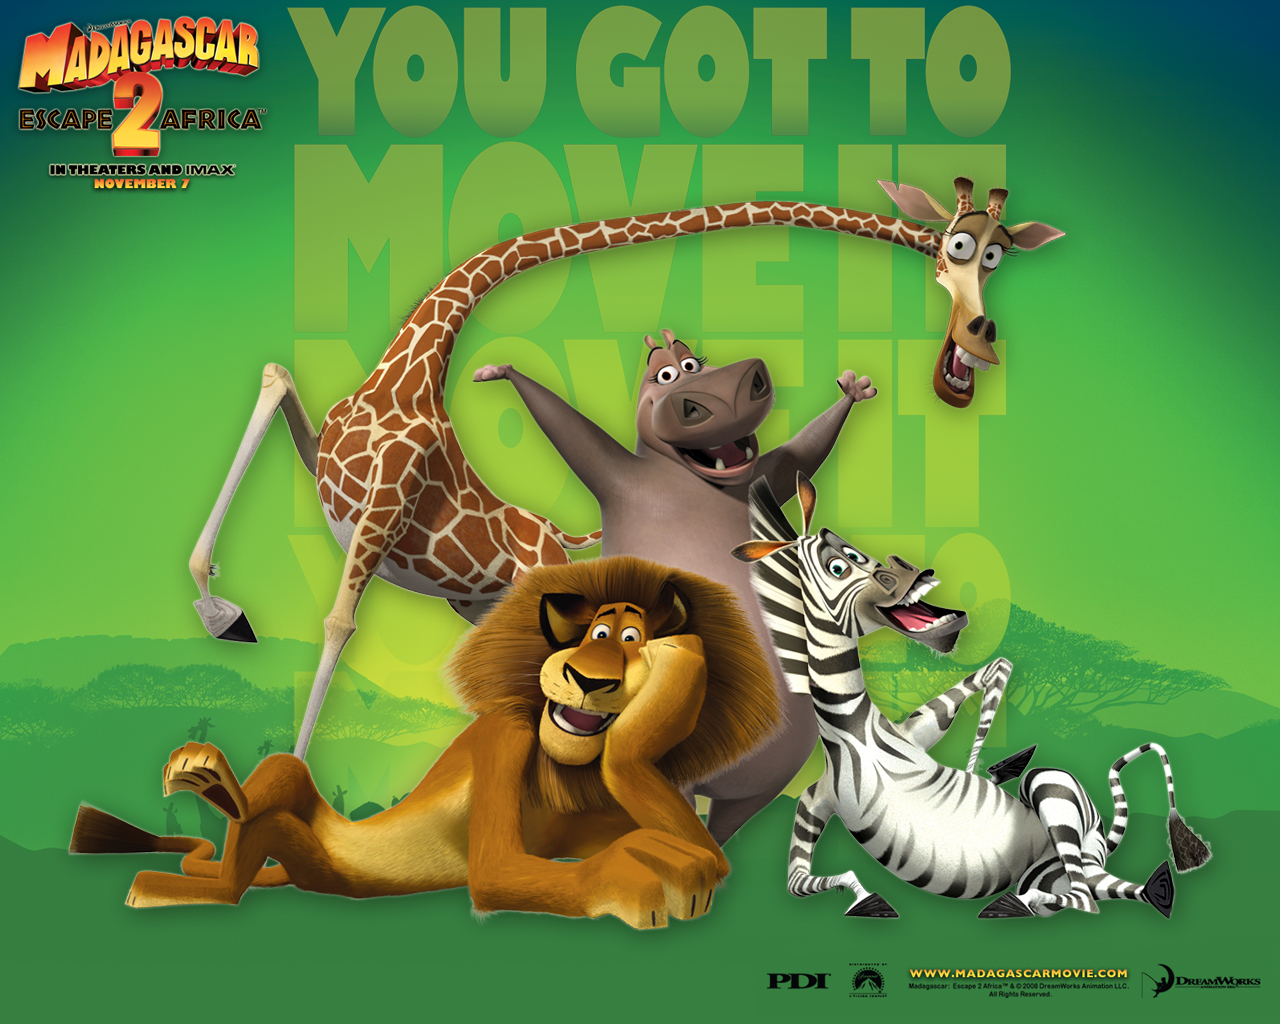 Madagascar wallpaper poster avatars beautifully - Madagascar wallpaper ...